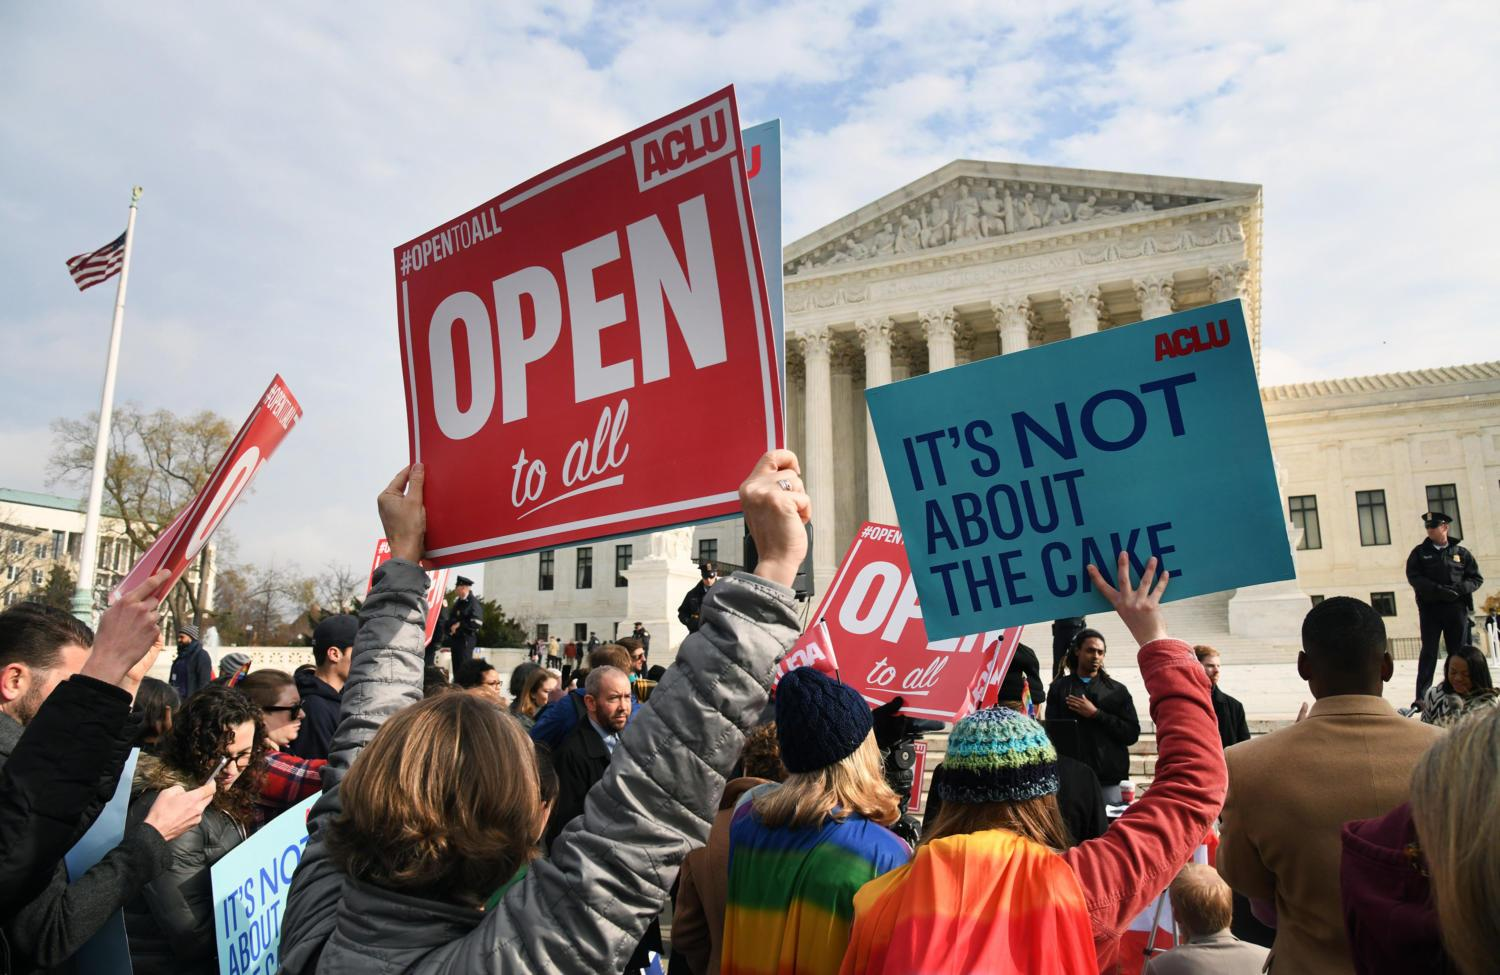 Protesters gathered in front of the Supreme Court building Dec. 5, 2017, the day the court was to hear the case Masterpiece Cakeshop v. Colorado Civil Rights Commission. The case was decided in favor of Masterpiece Cakeshop June 4, 2018. (Olivier Douliery/Abaca Press/TNS)